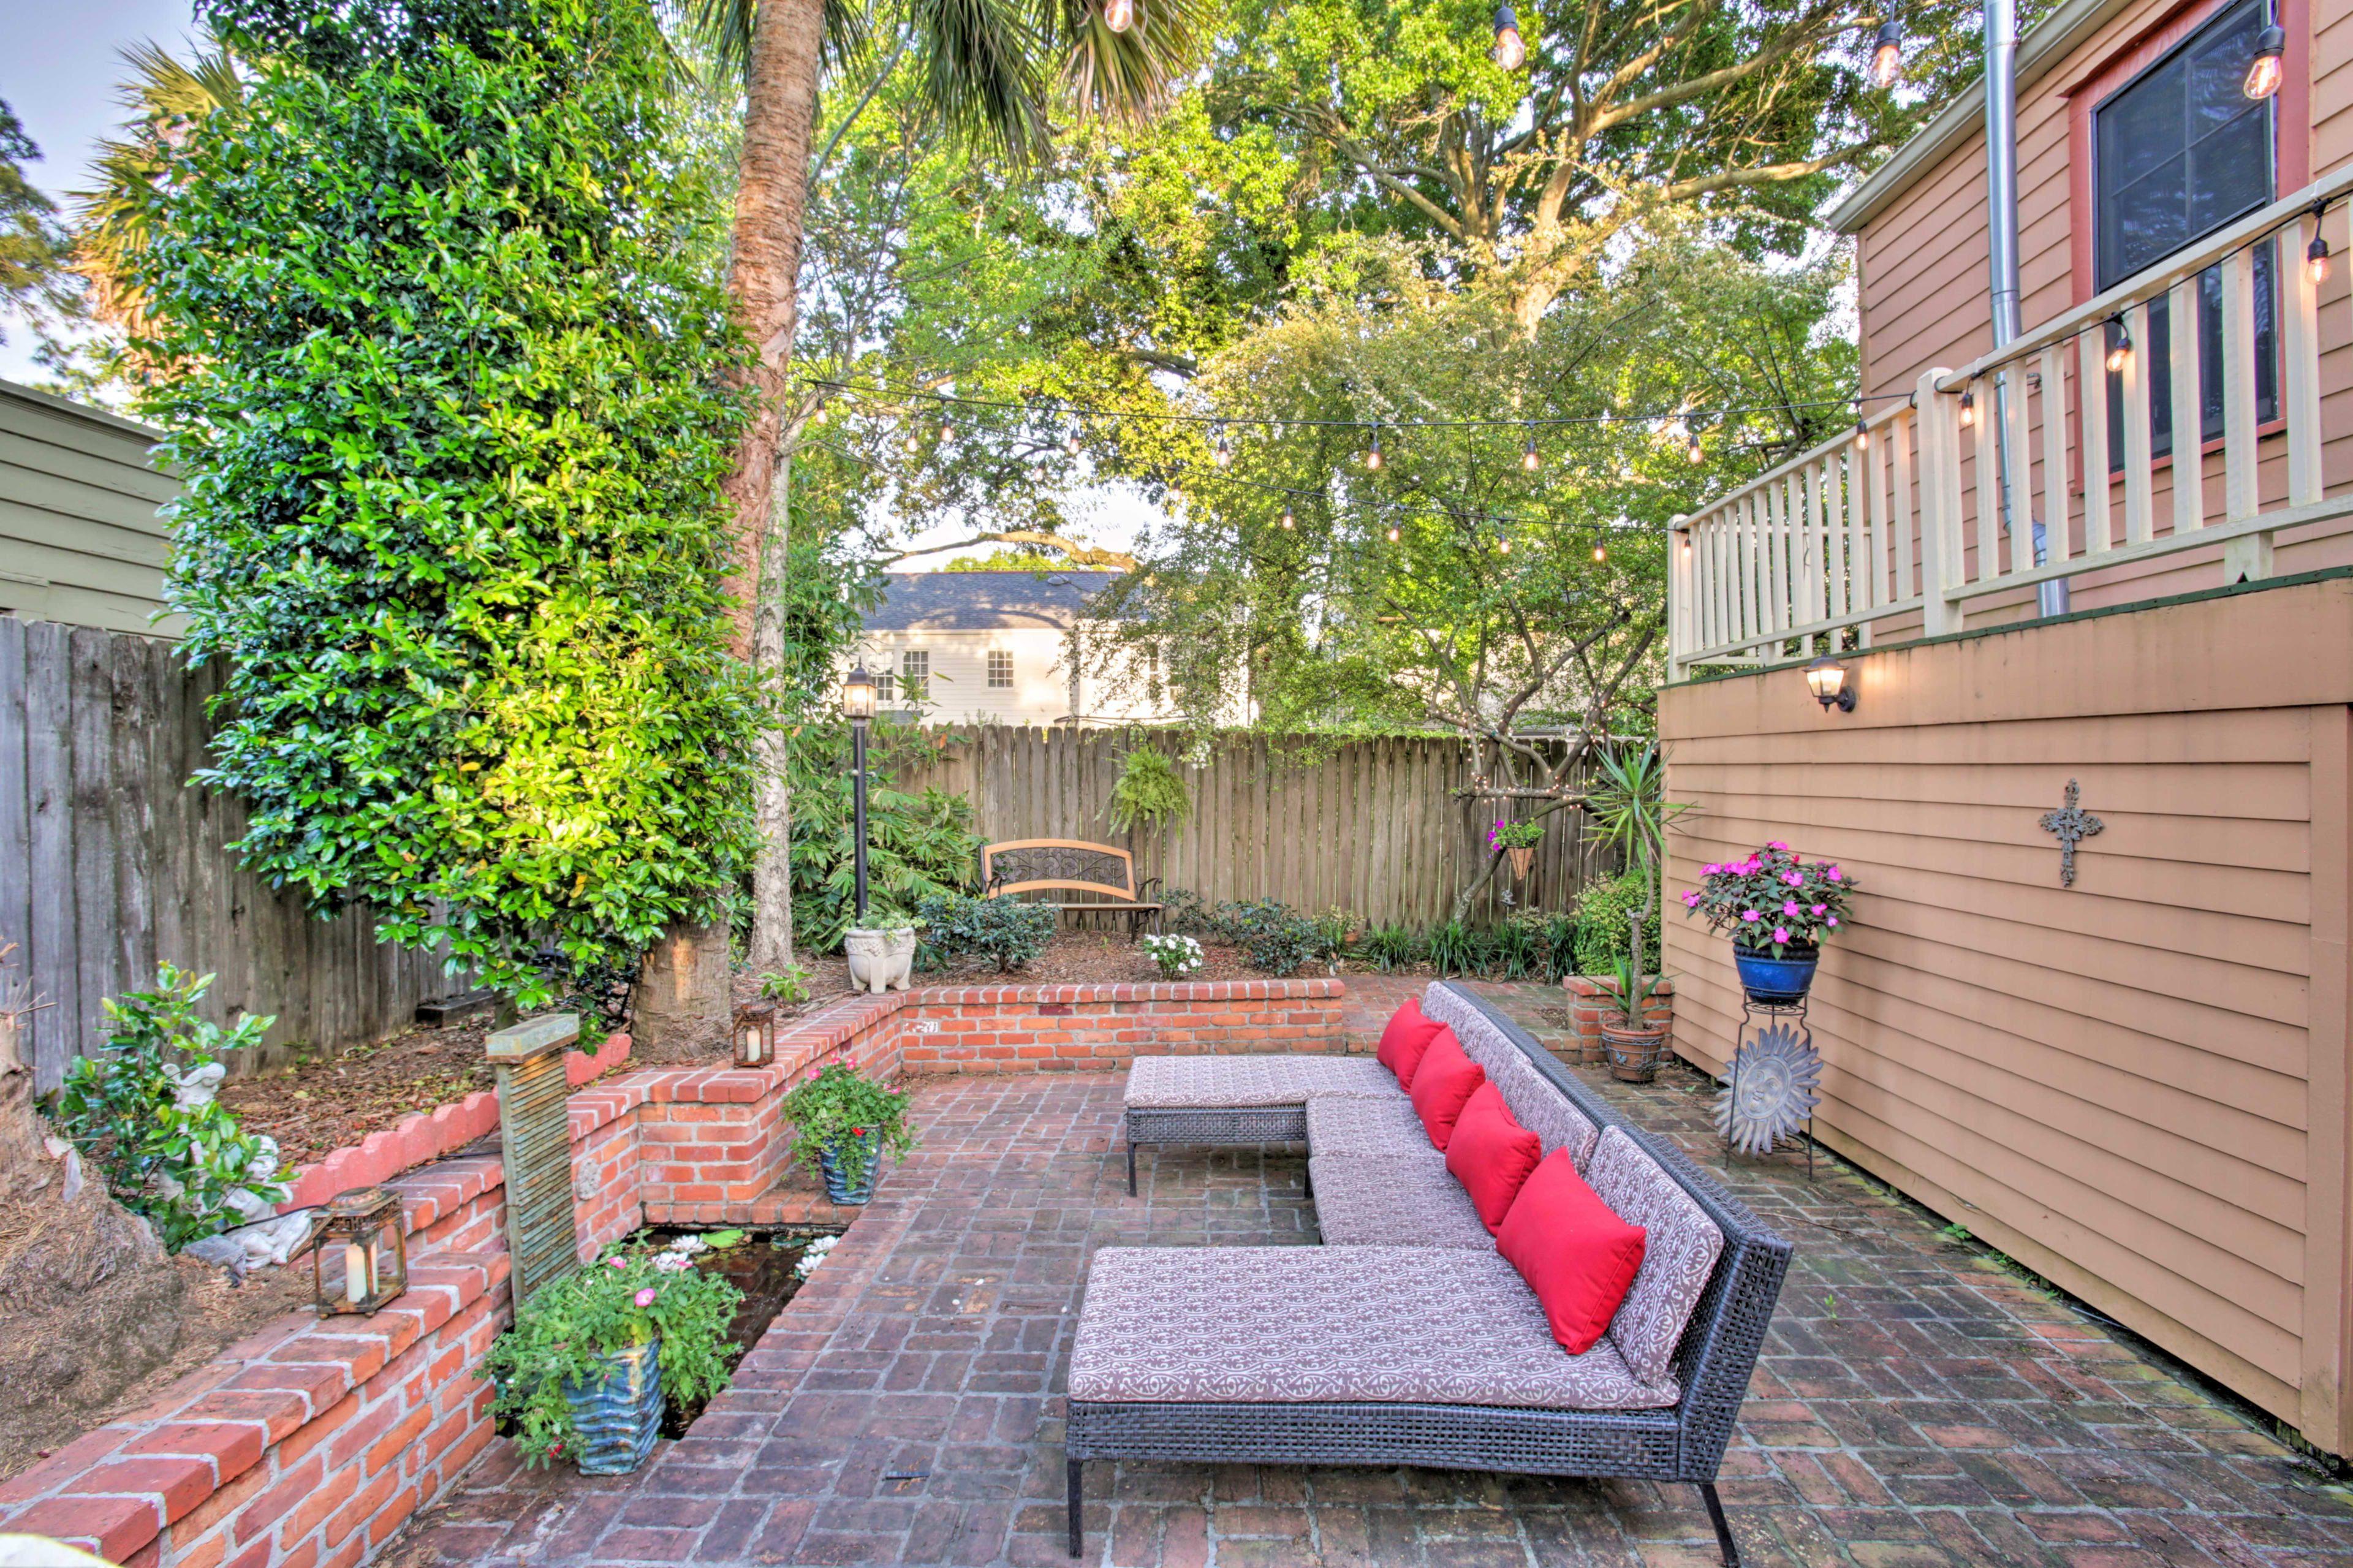 Unwind on the patio furniture and enjoy plenty of privacy at the outdoor space.